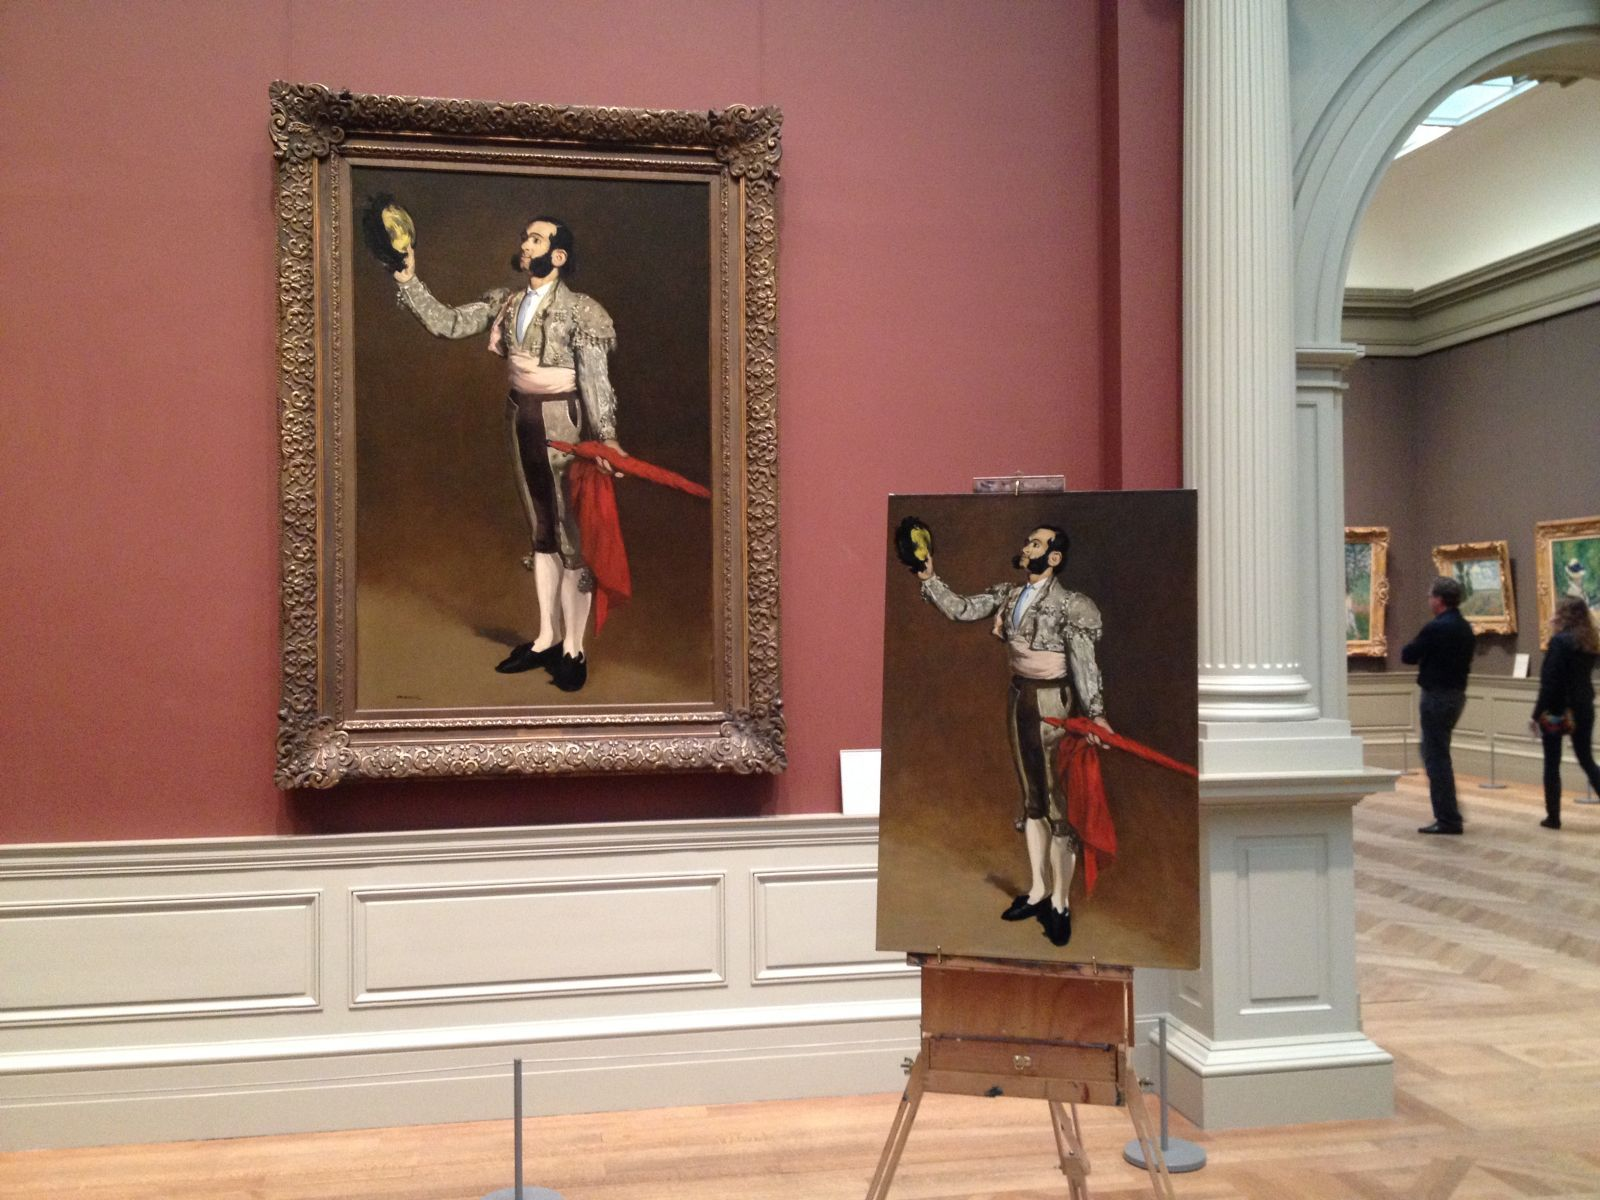 Copy after El Matador by Manet